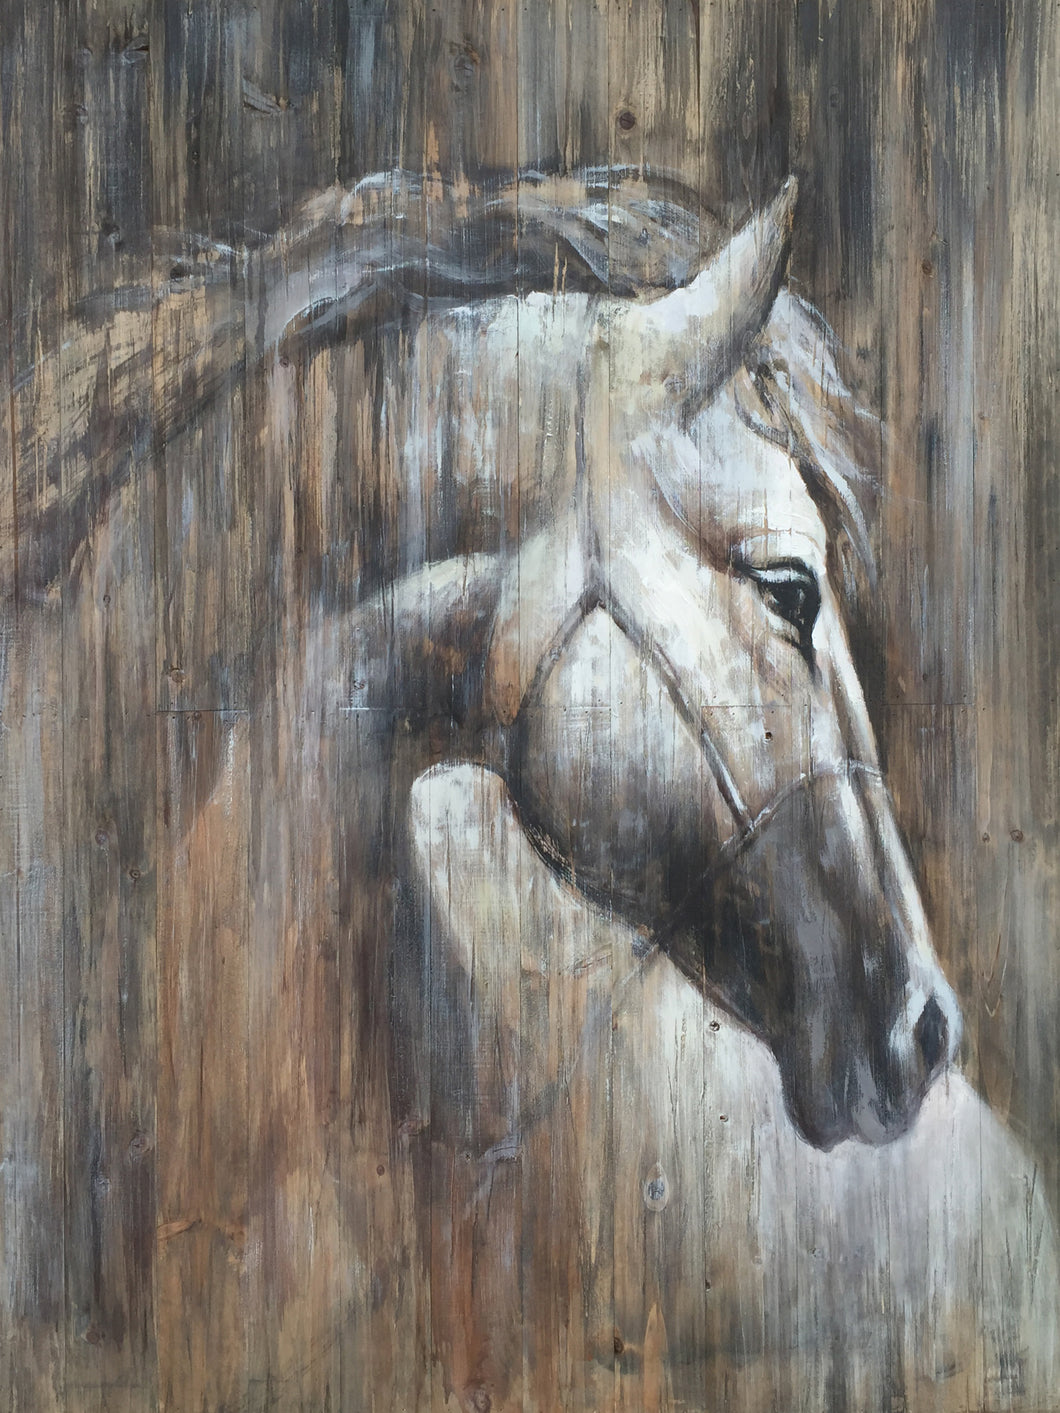 'Horse on the wood' Oil Painting Print on Wrapped Canvas